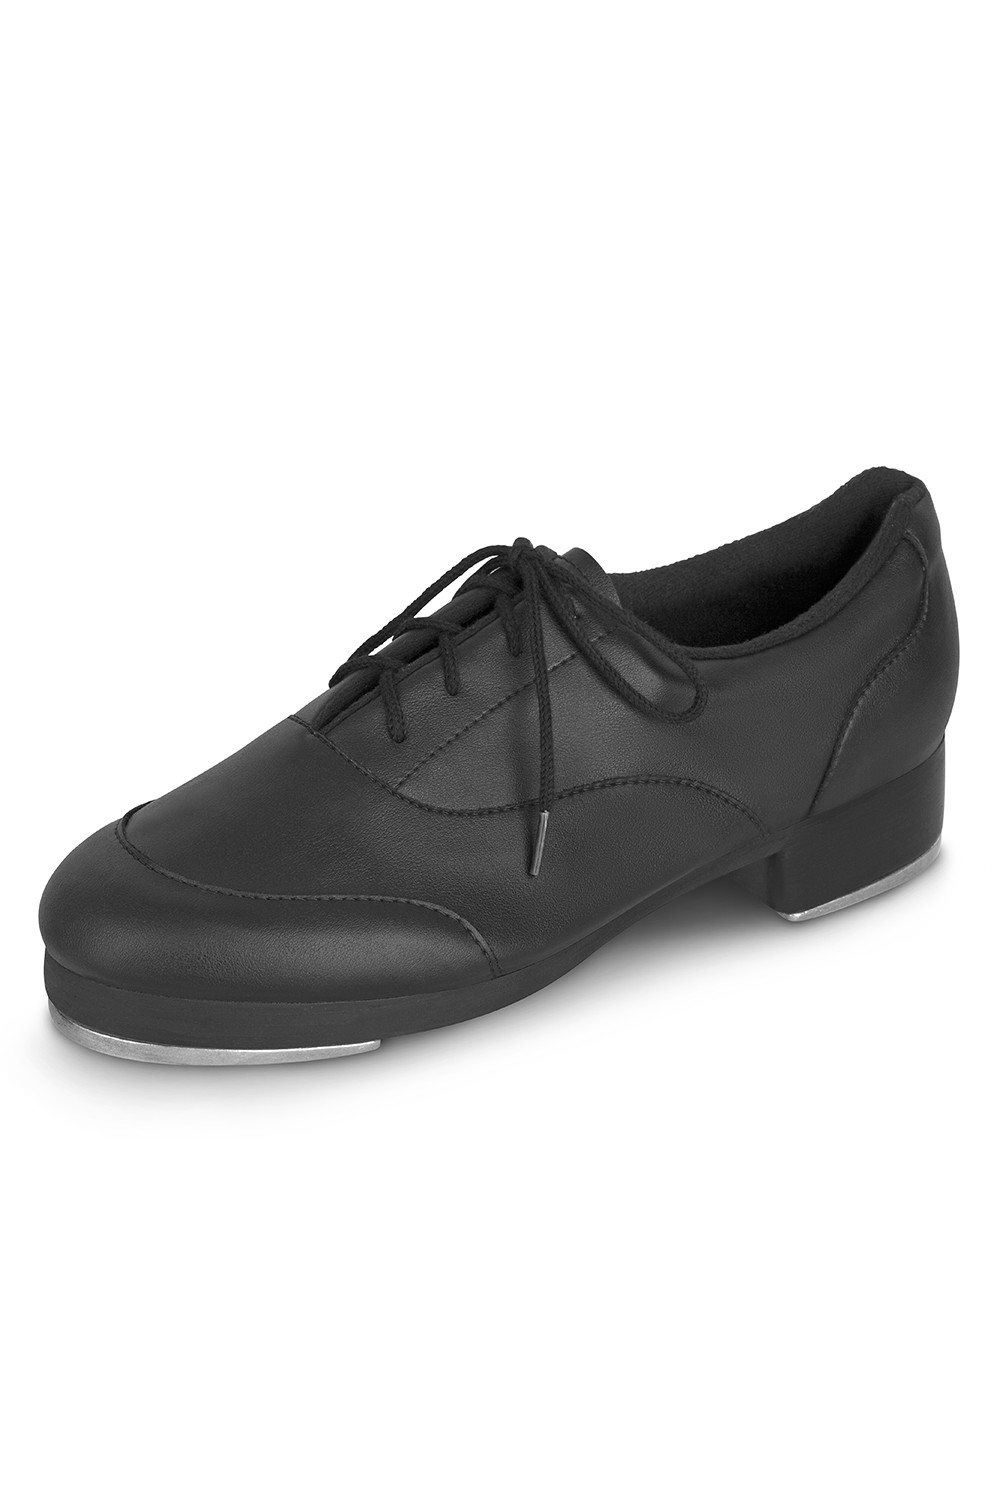 Ultra Tap Women's Tap Shoes